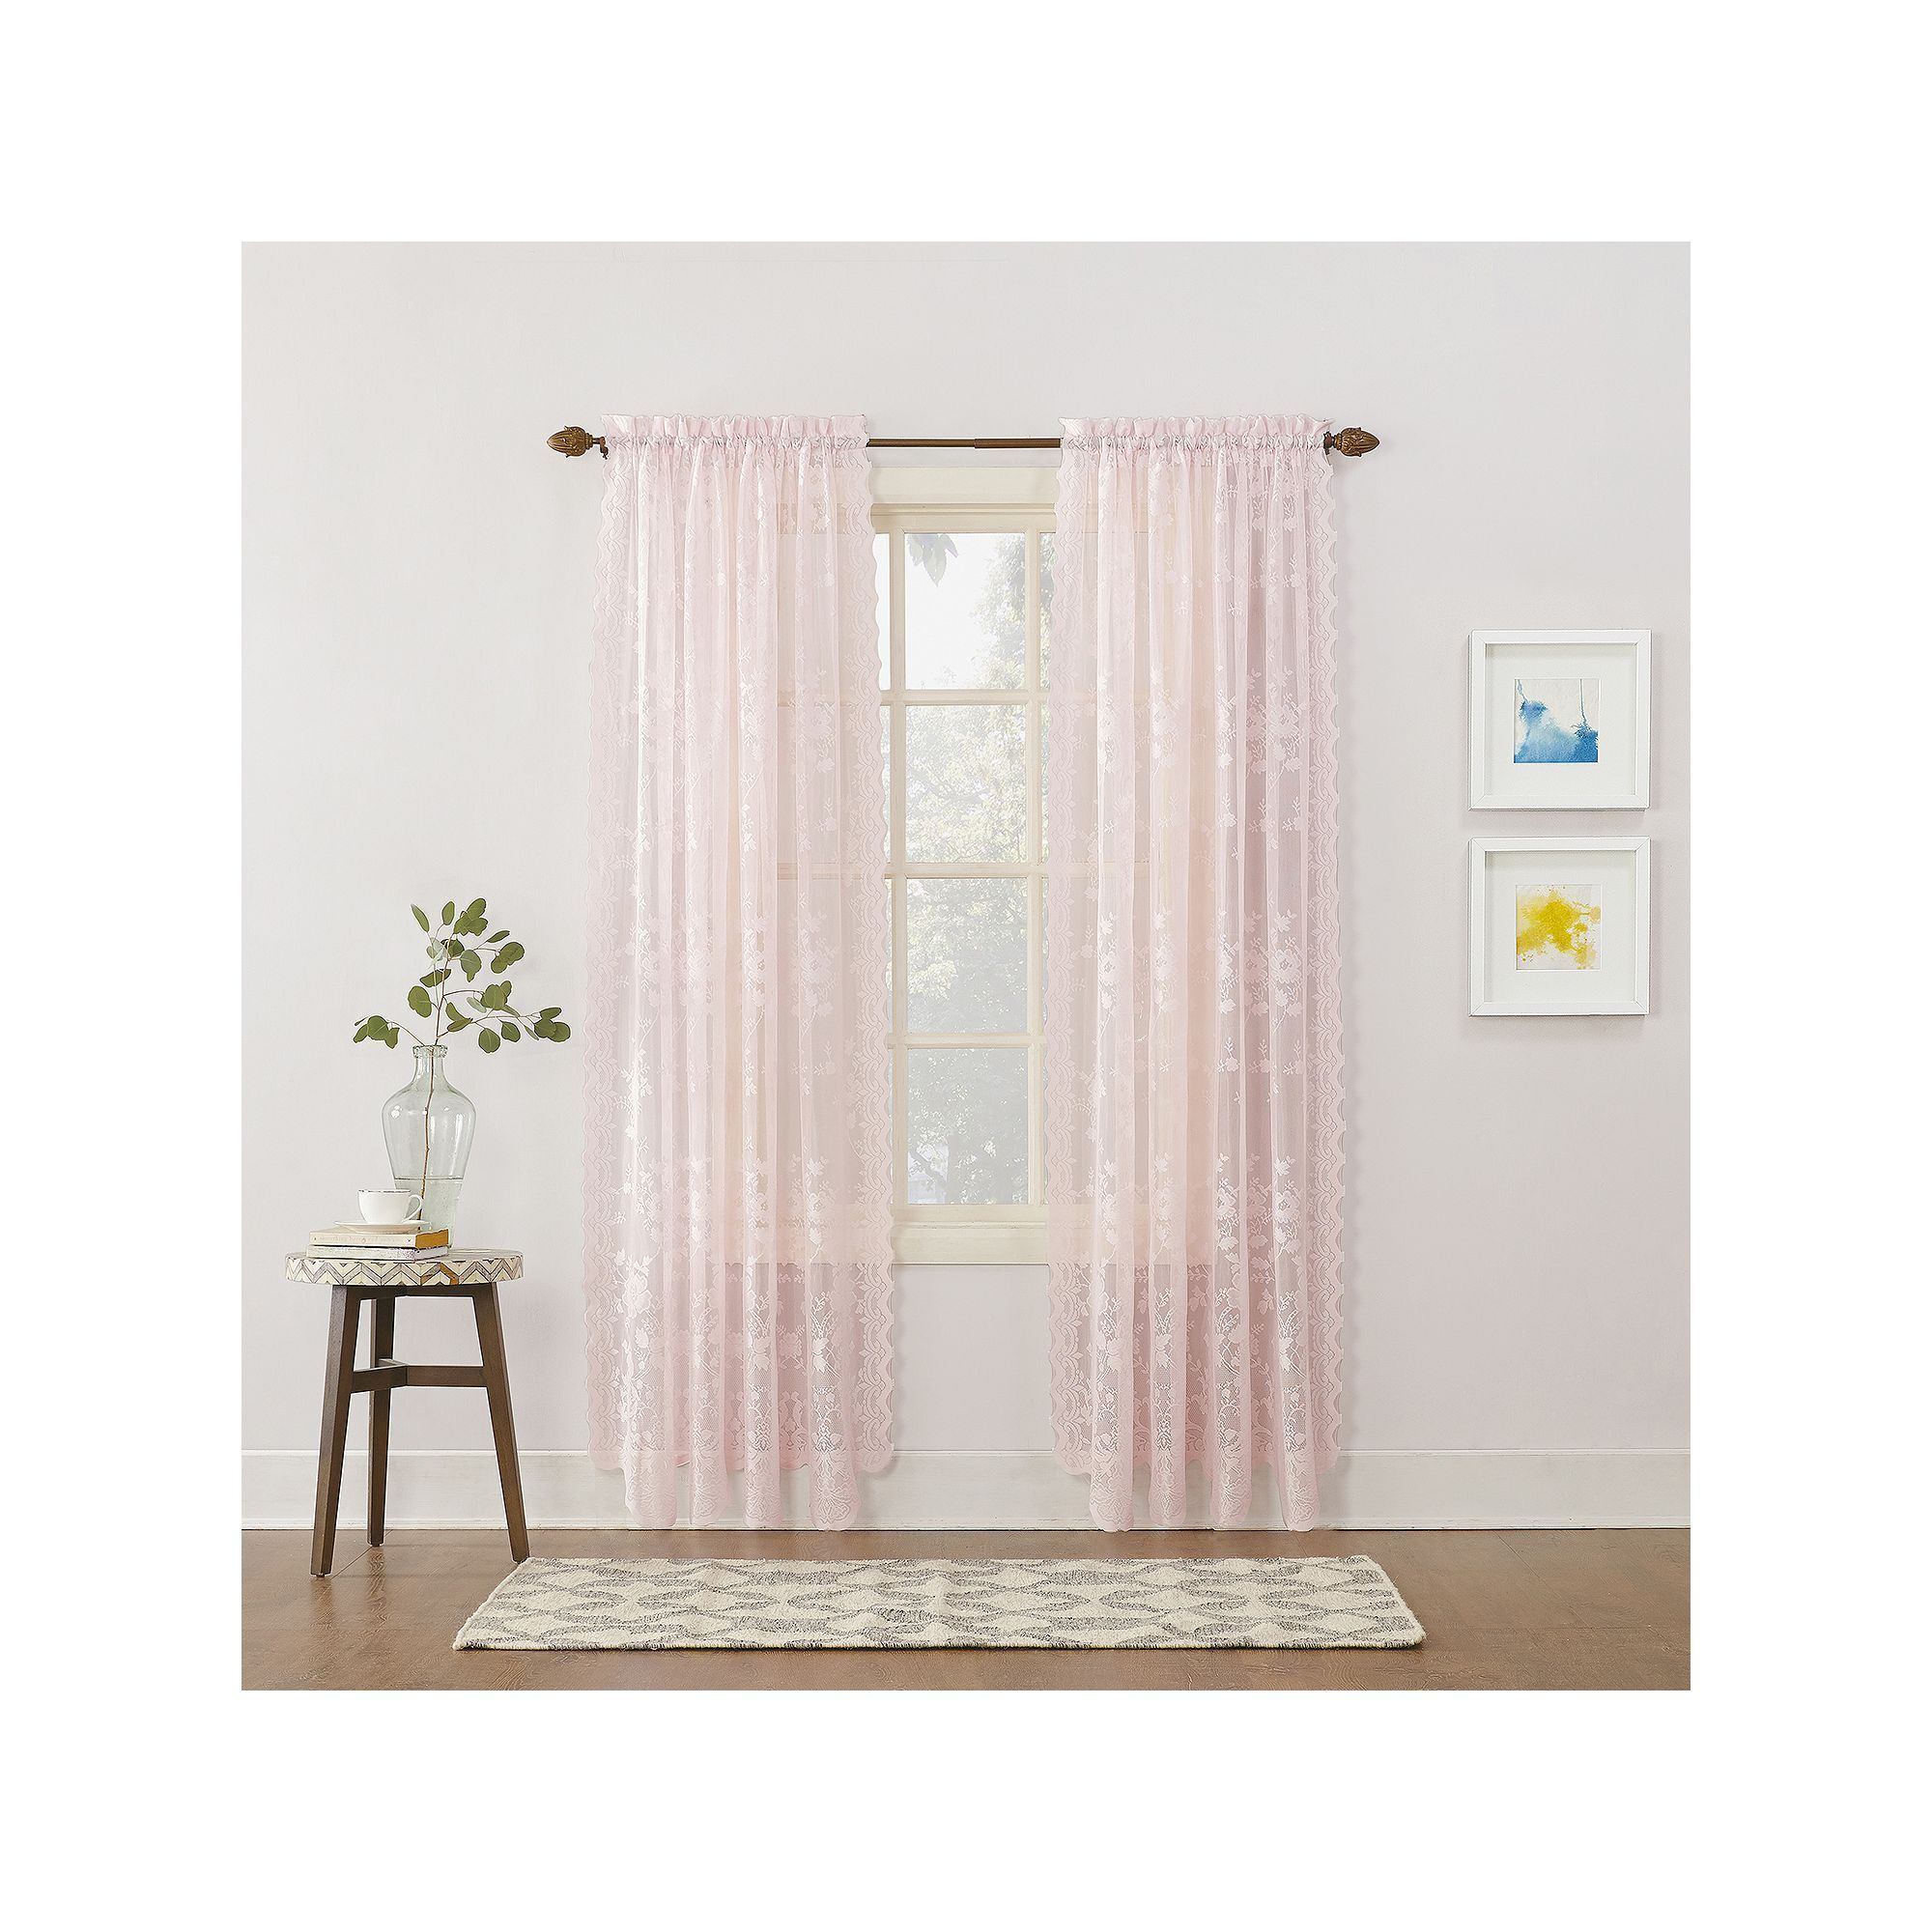 No 918 1 Panel Alison Floral Lace Sheer Window Curtain Throughout Alison Rod Pocket Lace Window Curtain Panels (Image 11 of 20)